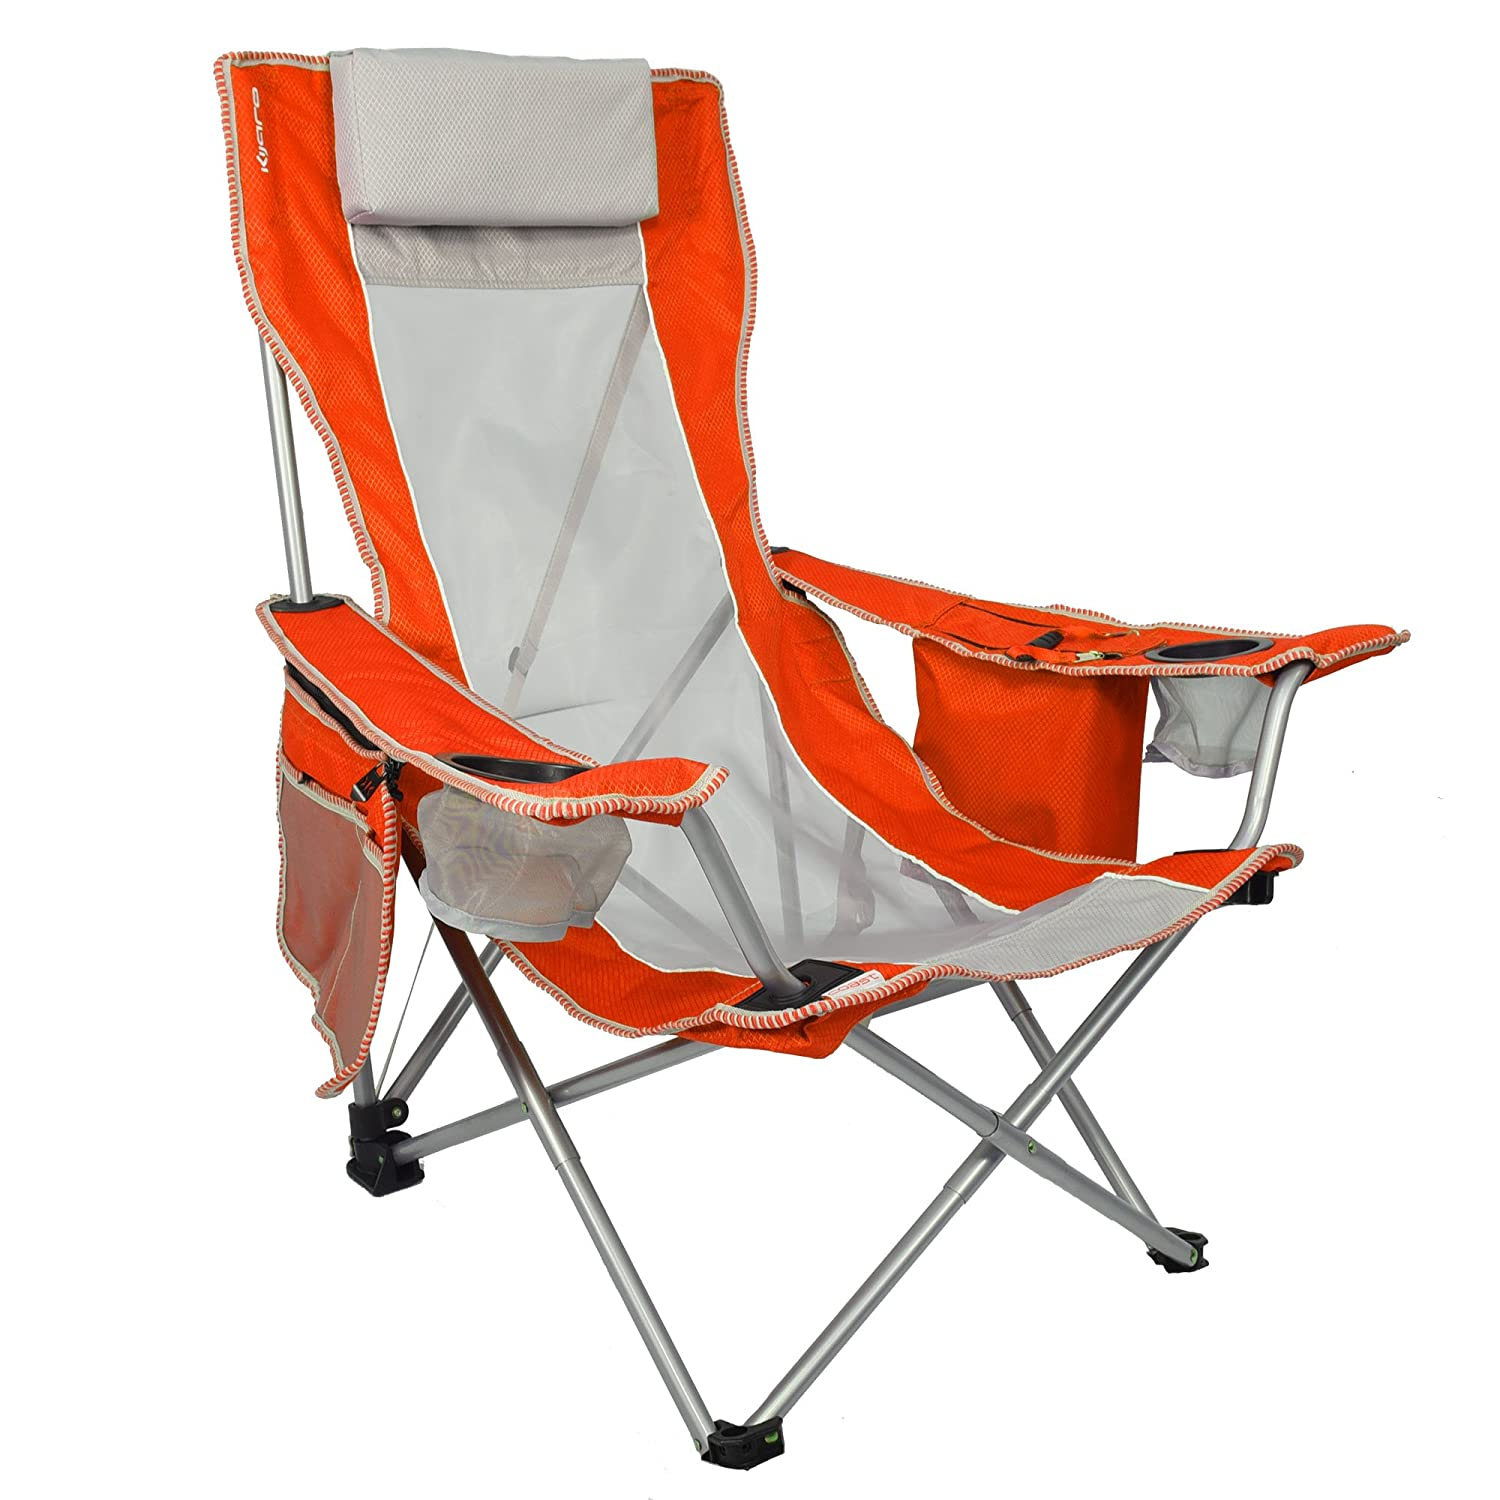 Marvelous Kijaro Coast Folding Beach Sling Chair With Cooler Gmtry Best Dining Table And Chair Ideas Images Gmtryco